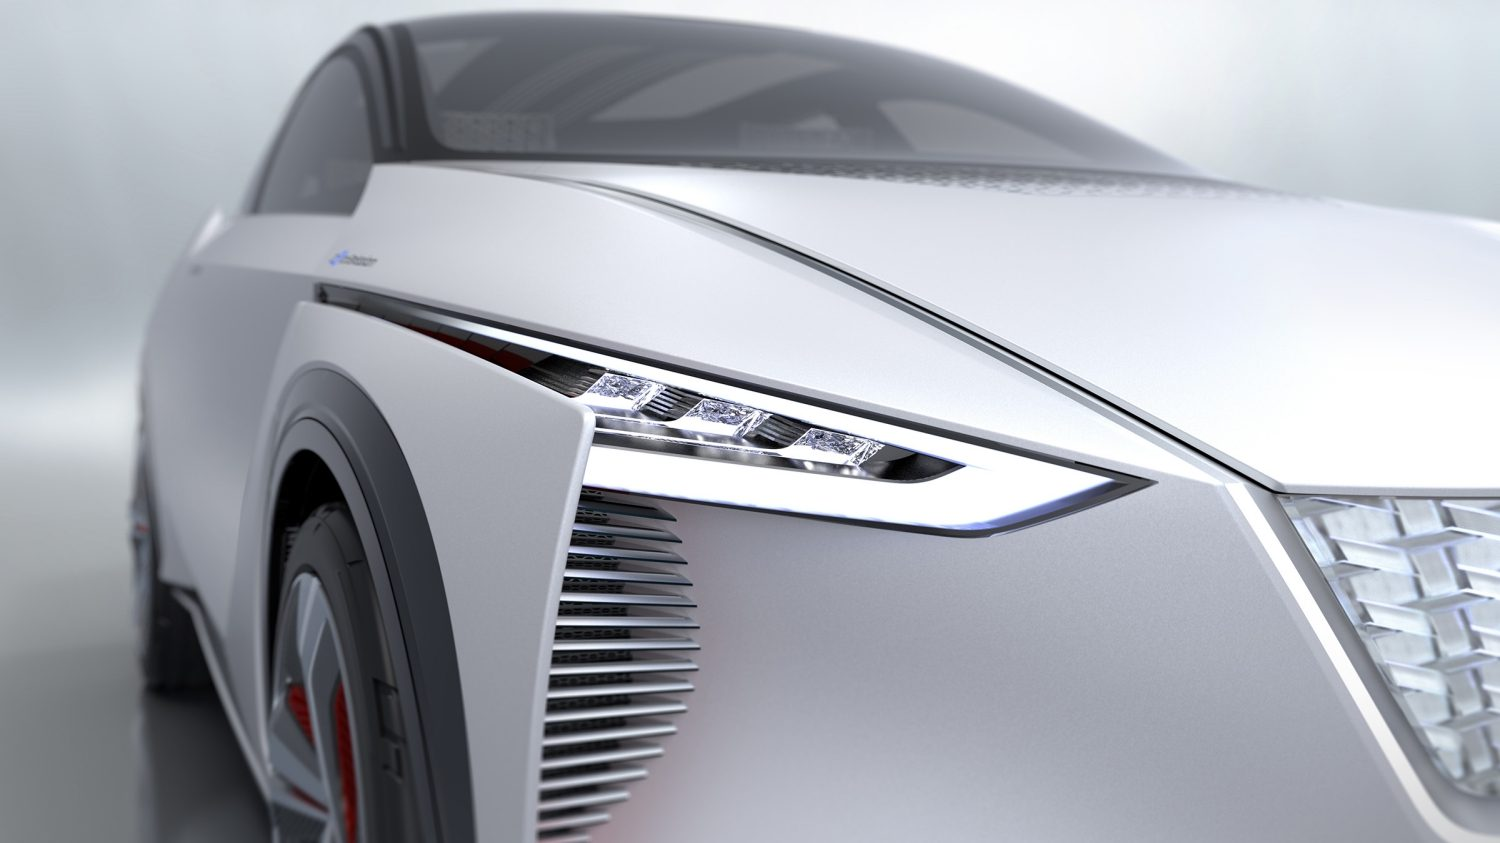 Nissan IMx concept car front head lamp detail